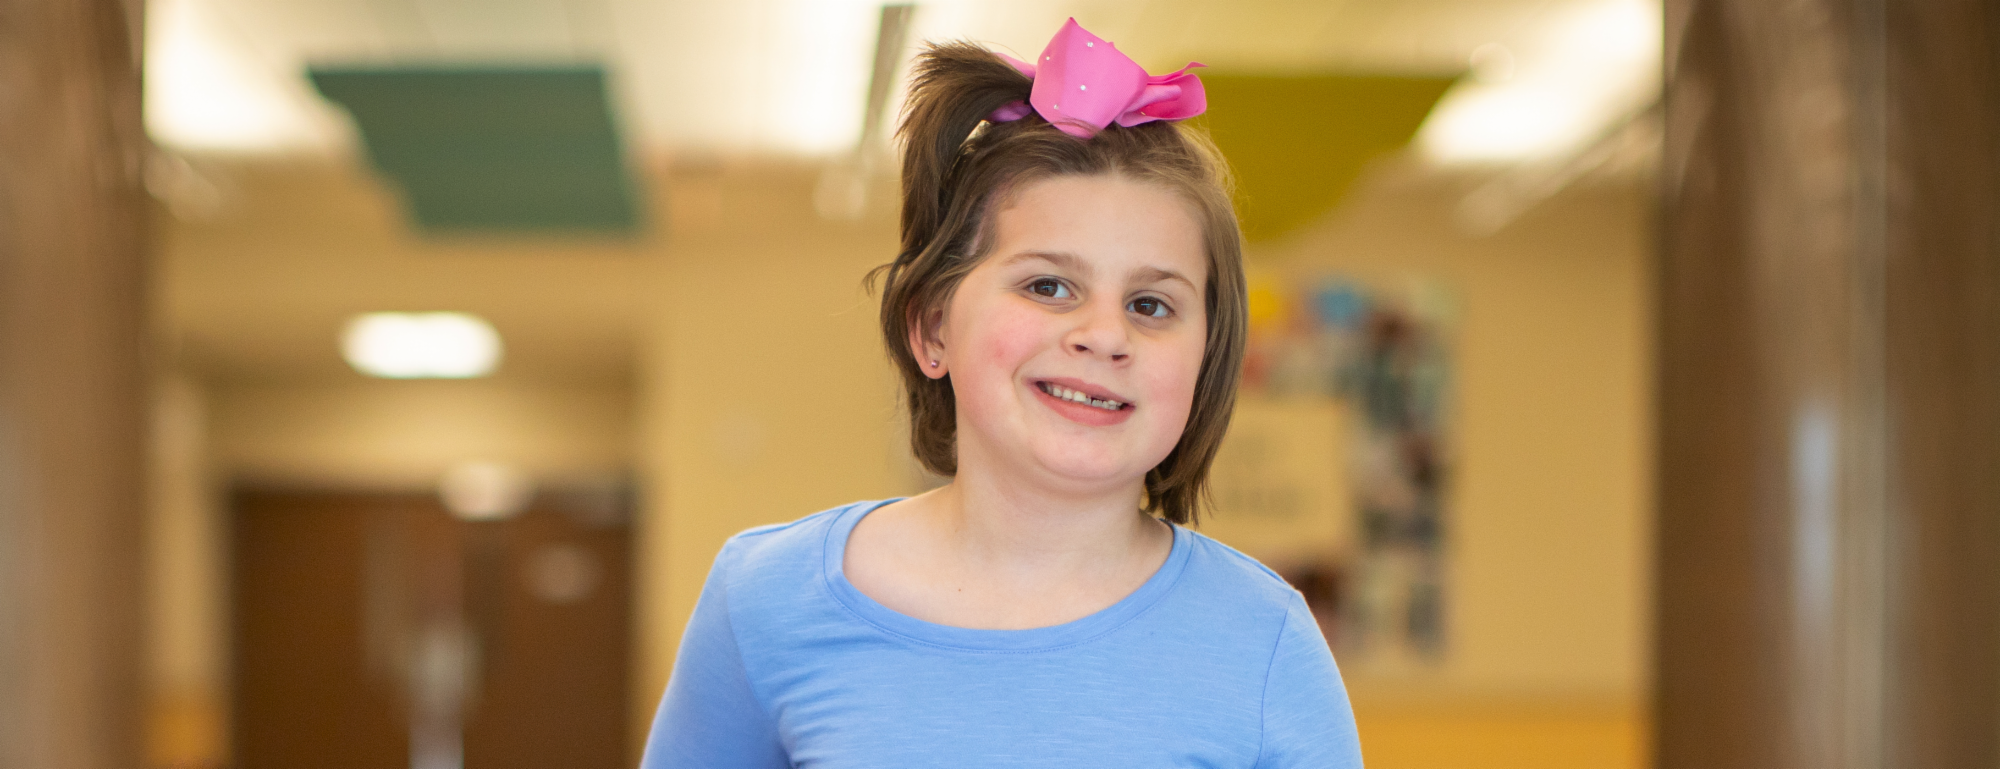 Sophia Had a Stroke Before Her Sixth Birthday